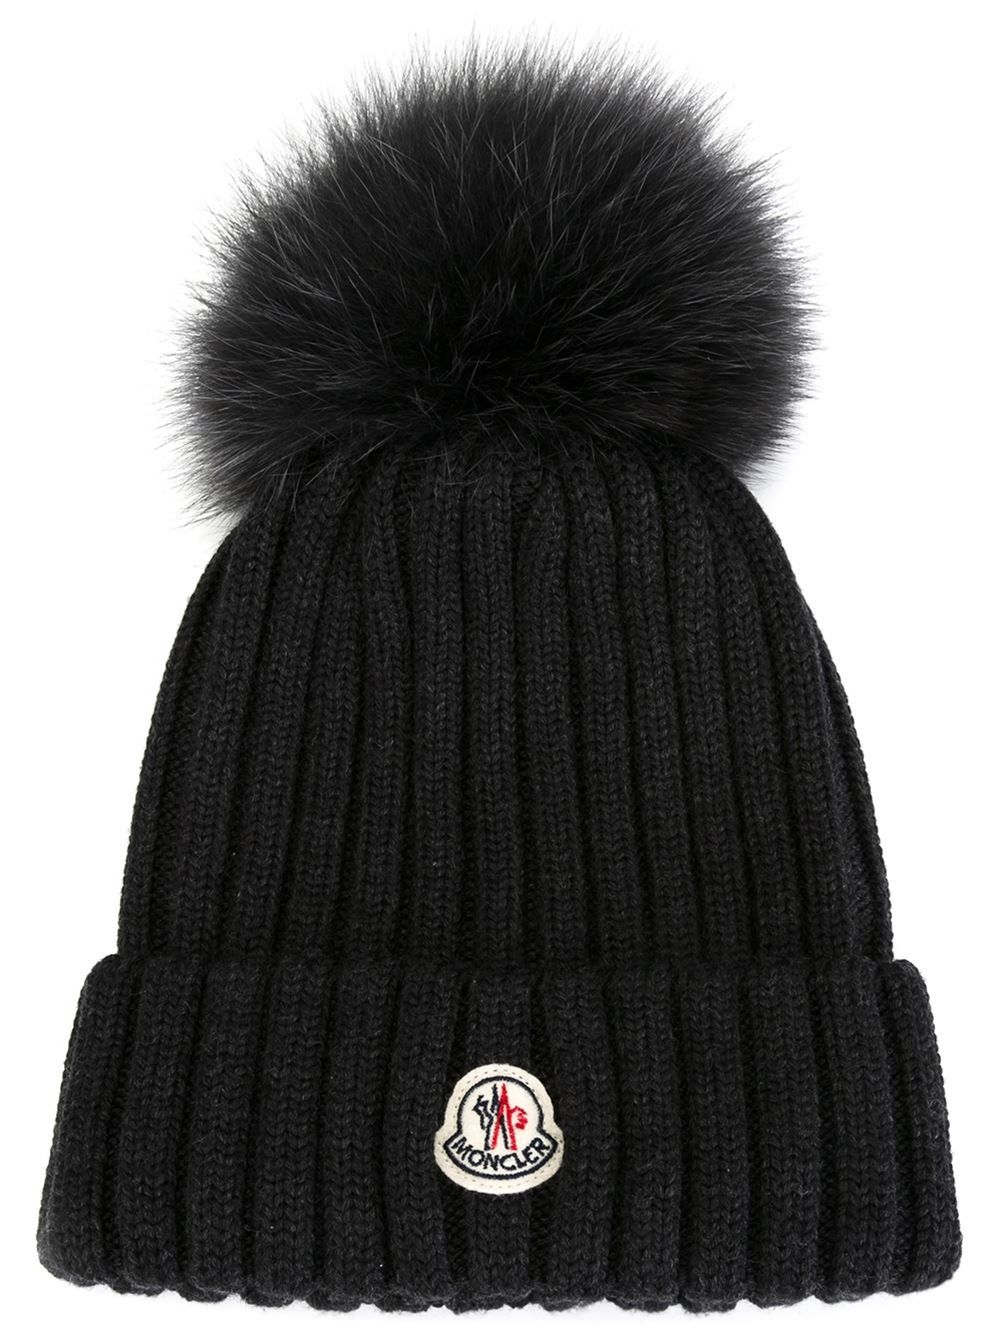 e4e100cb469 moncler  wool  hats  fur  black  newin  woman  fashion www.jofre.eu ...